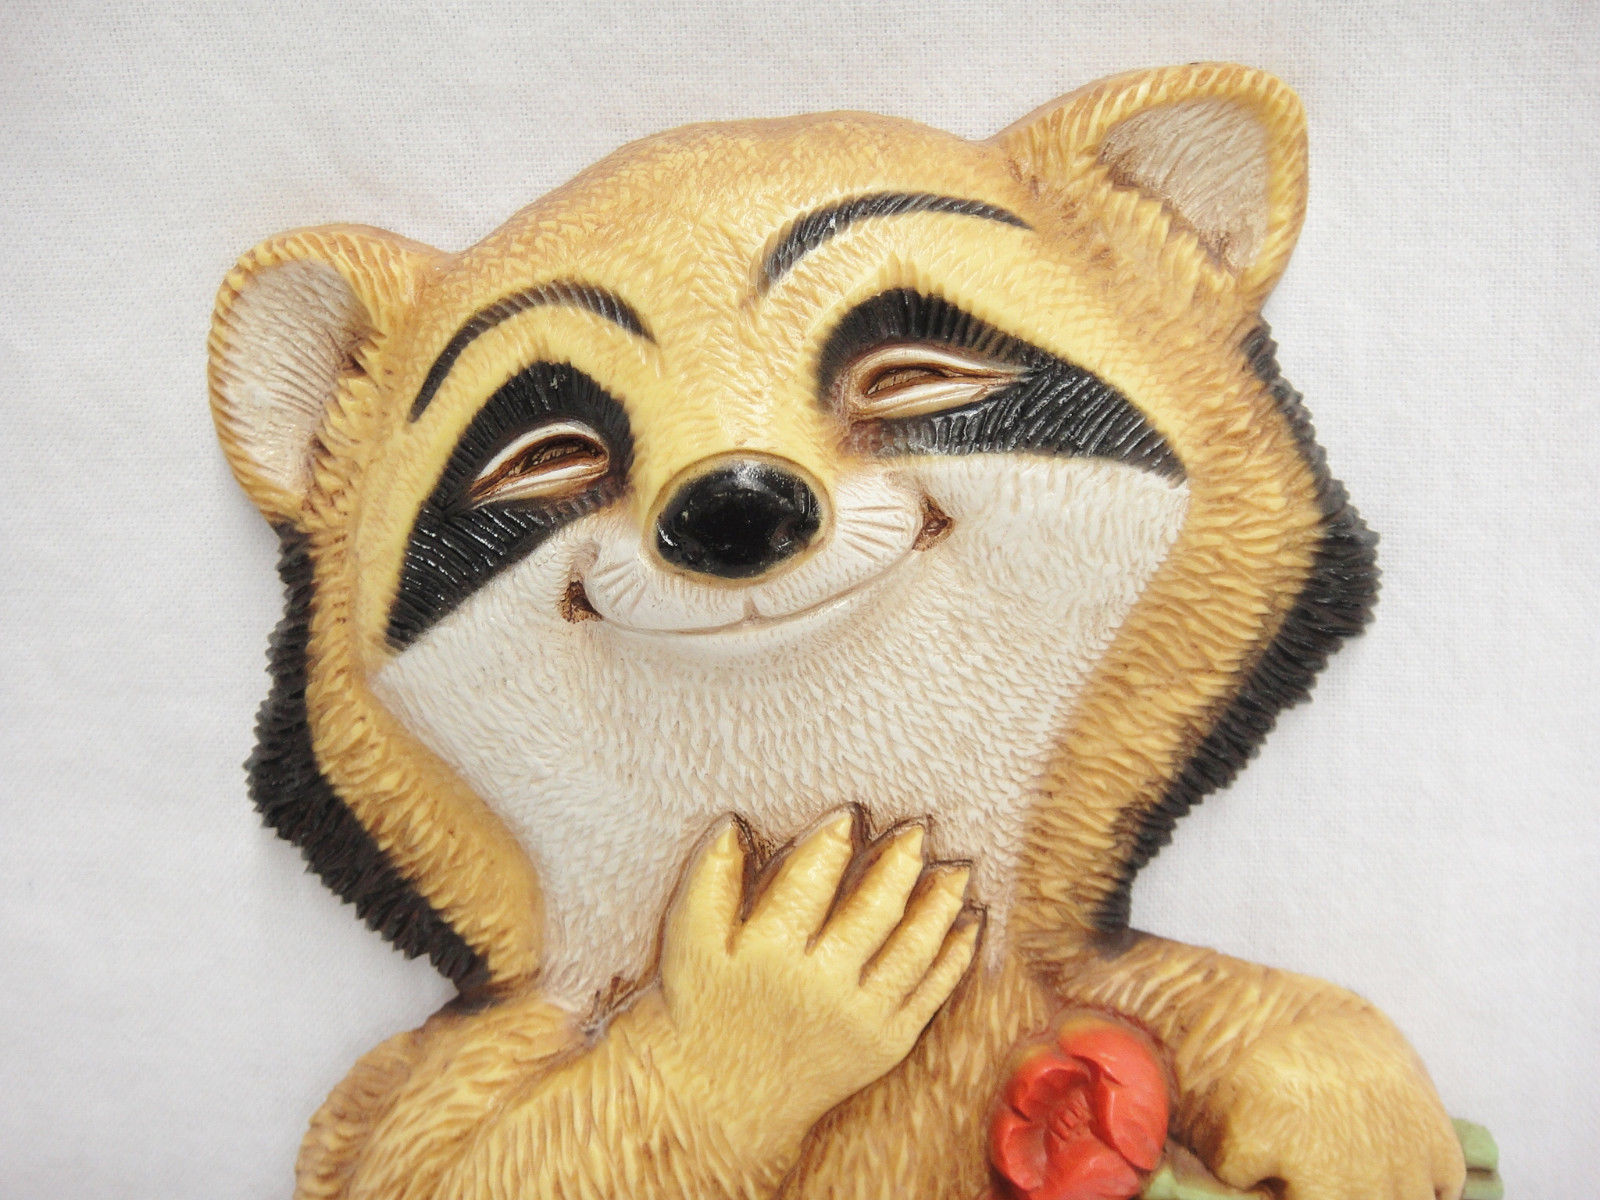 Vintage Homco Plastic Raccoon Plaque Wall and 11 similar items